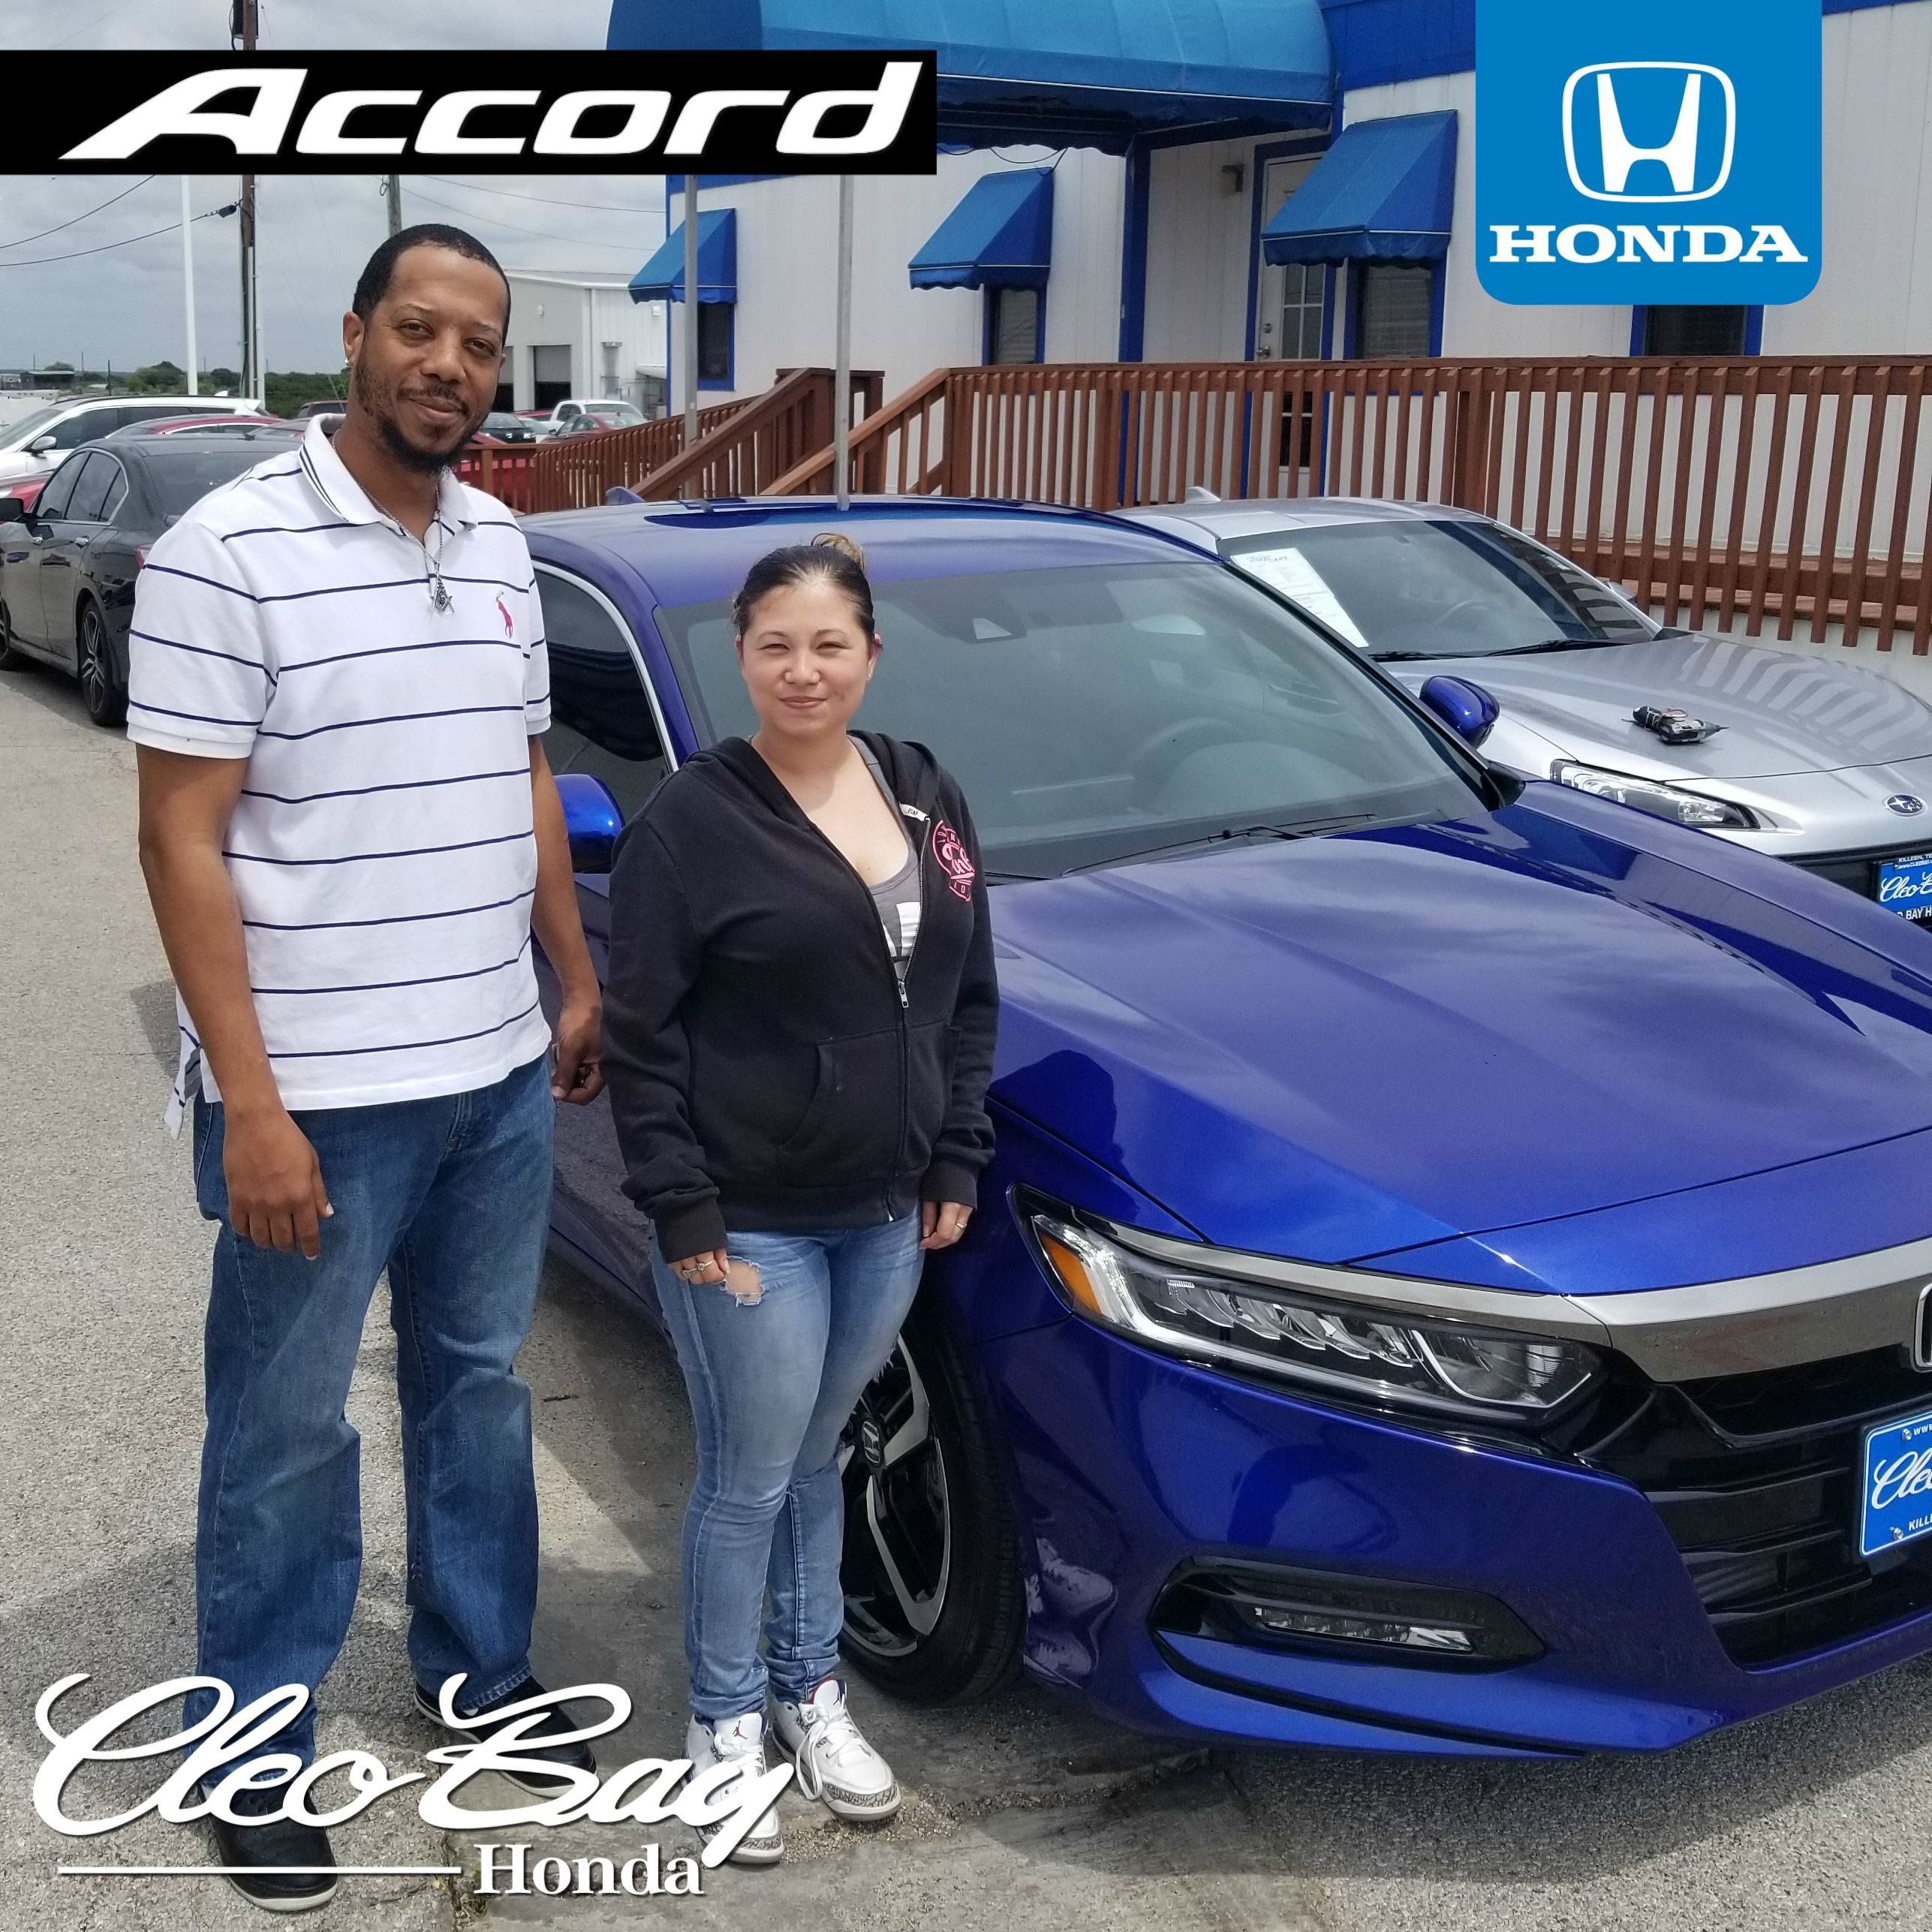 Congratulations Alicia on your recent purchase of a NEW